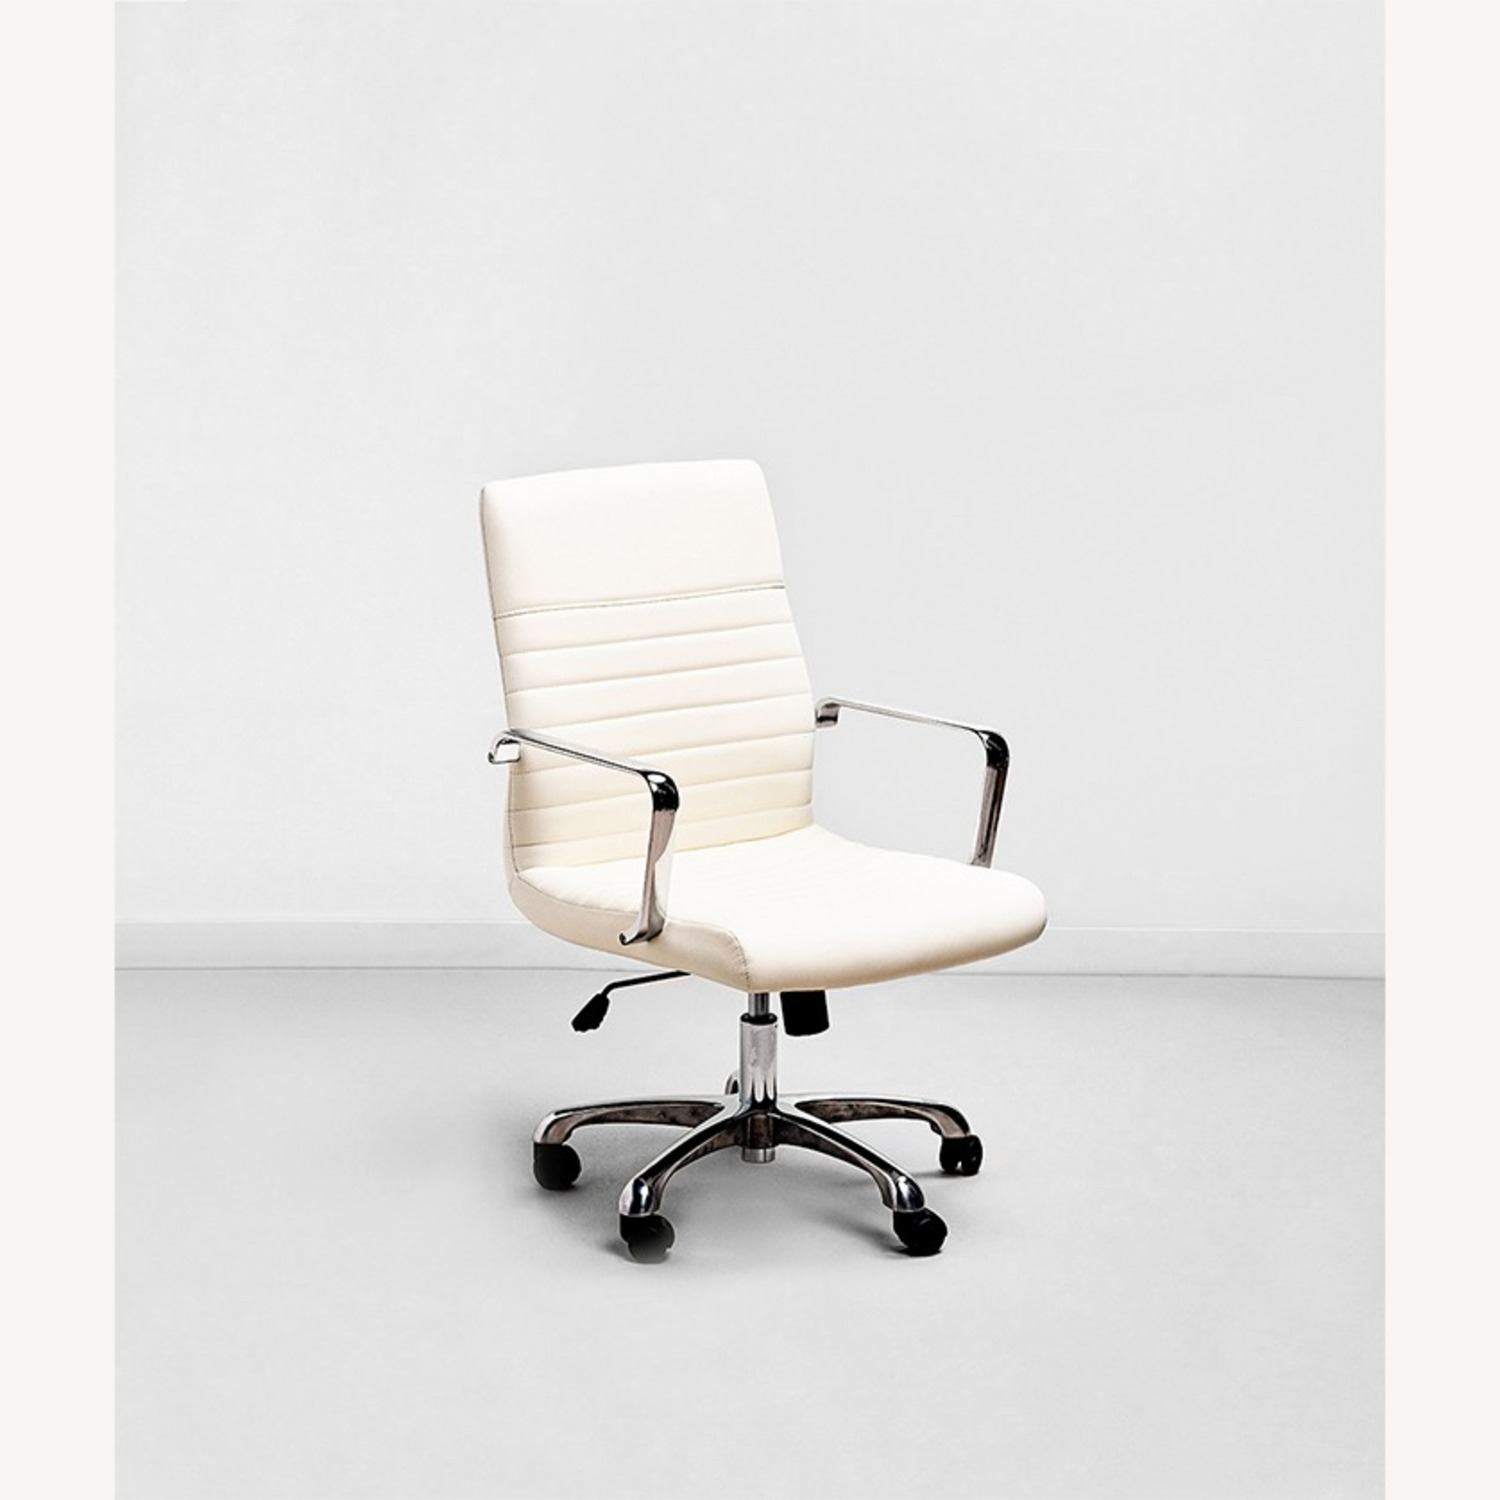 Modway Whimbrel Desk Chair - image-2